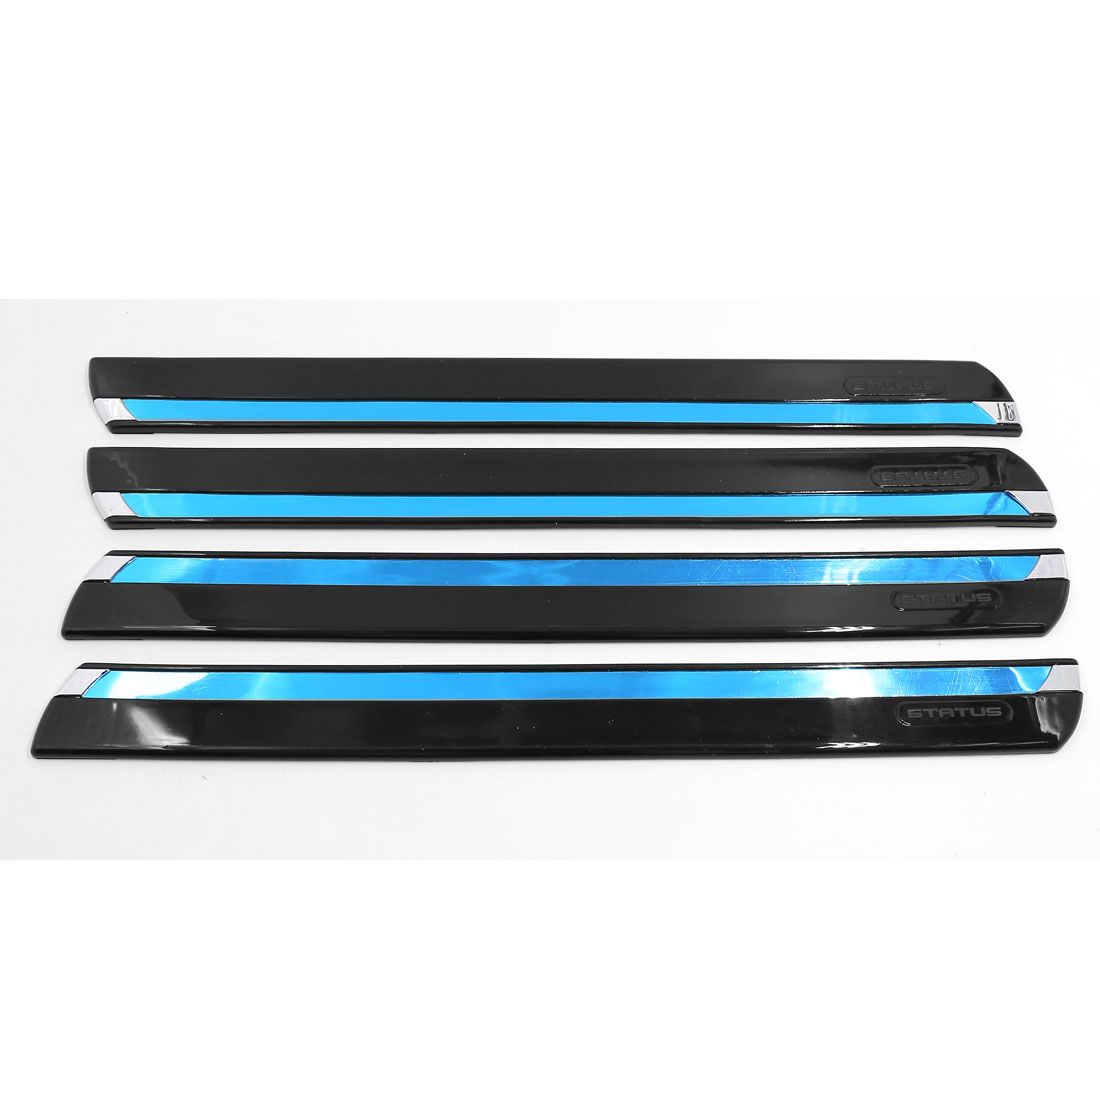 4 Pcs Flexible Reflective Car Front Rear Bumper Guard Protector Strip 42cm Long